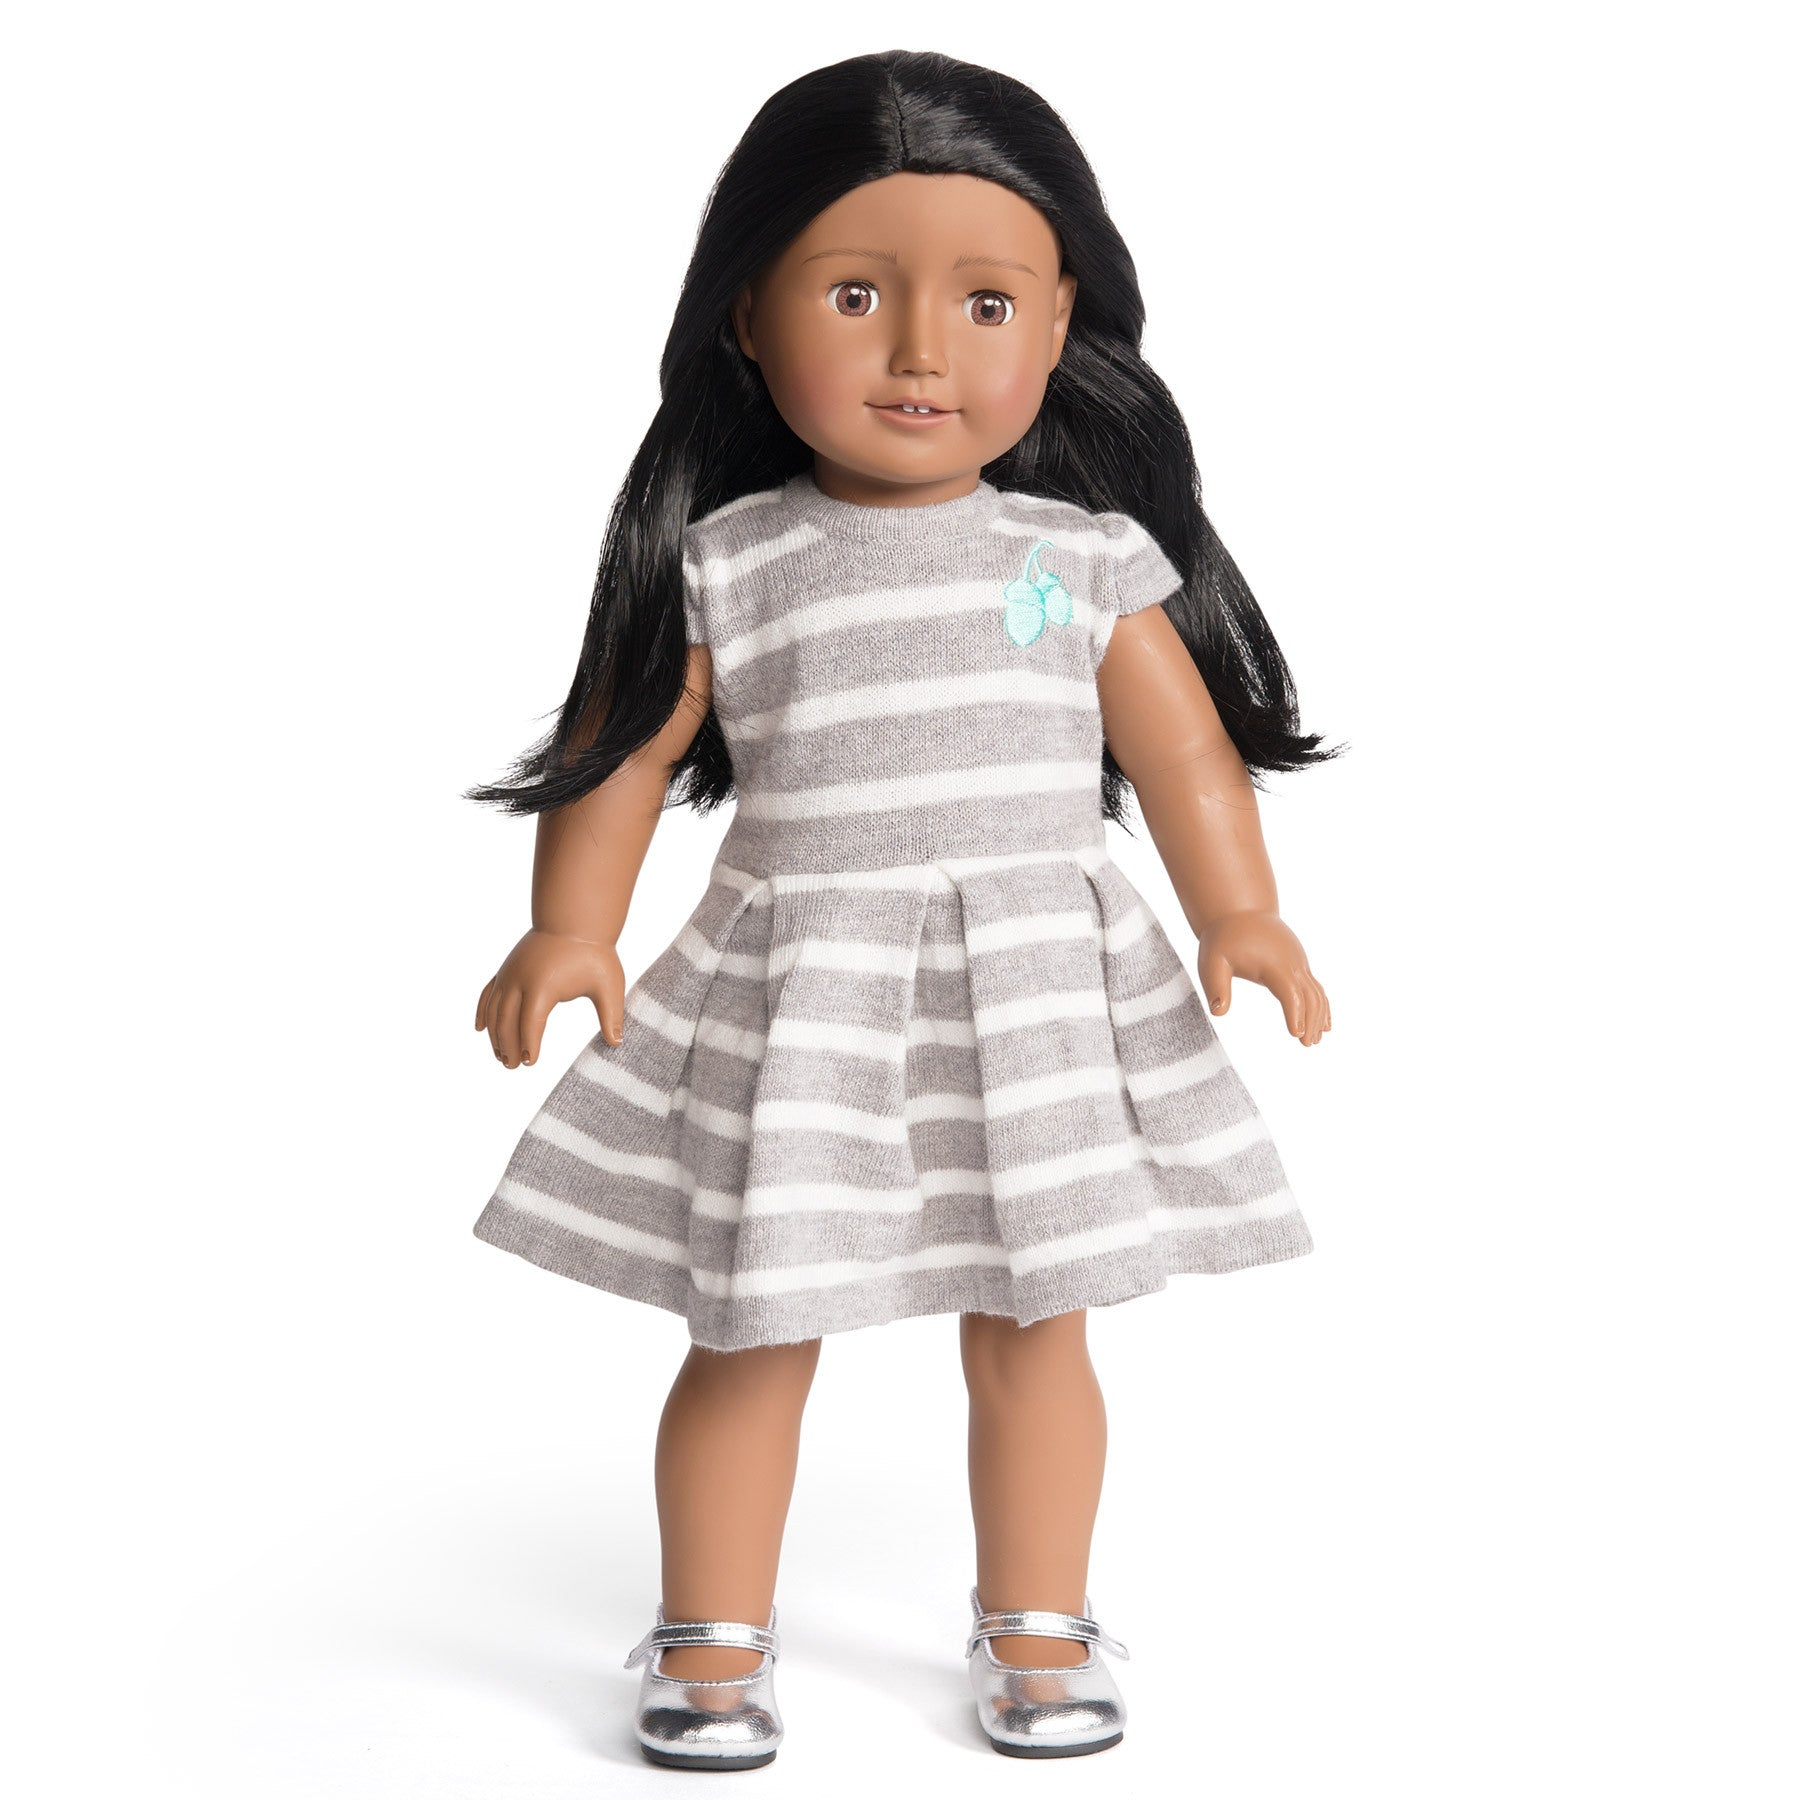 Florrie Doll 10 Dark Skin Black Hair Brown Eyes Doll